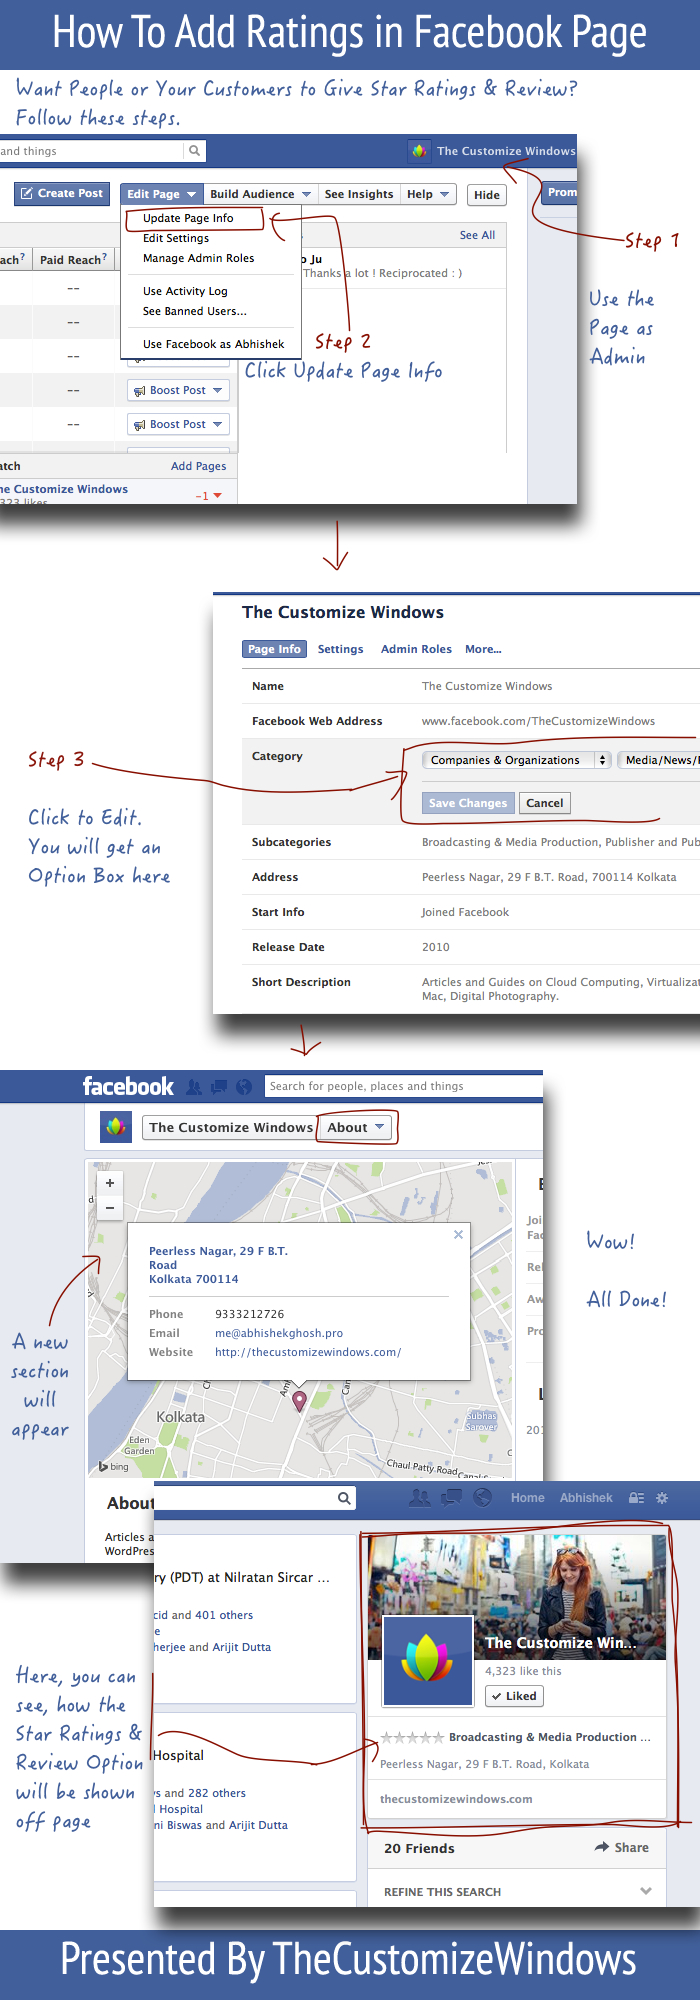 How To Add Ratings in Facebook Page